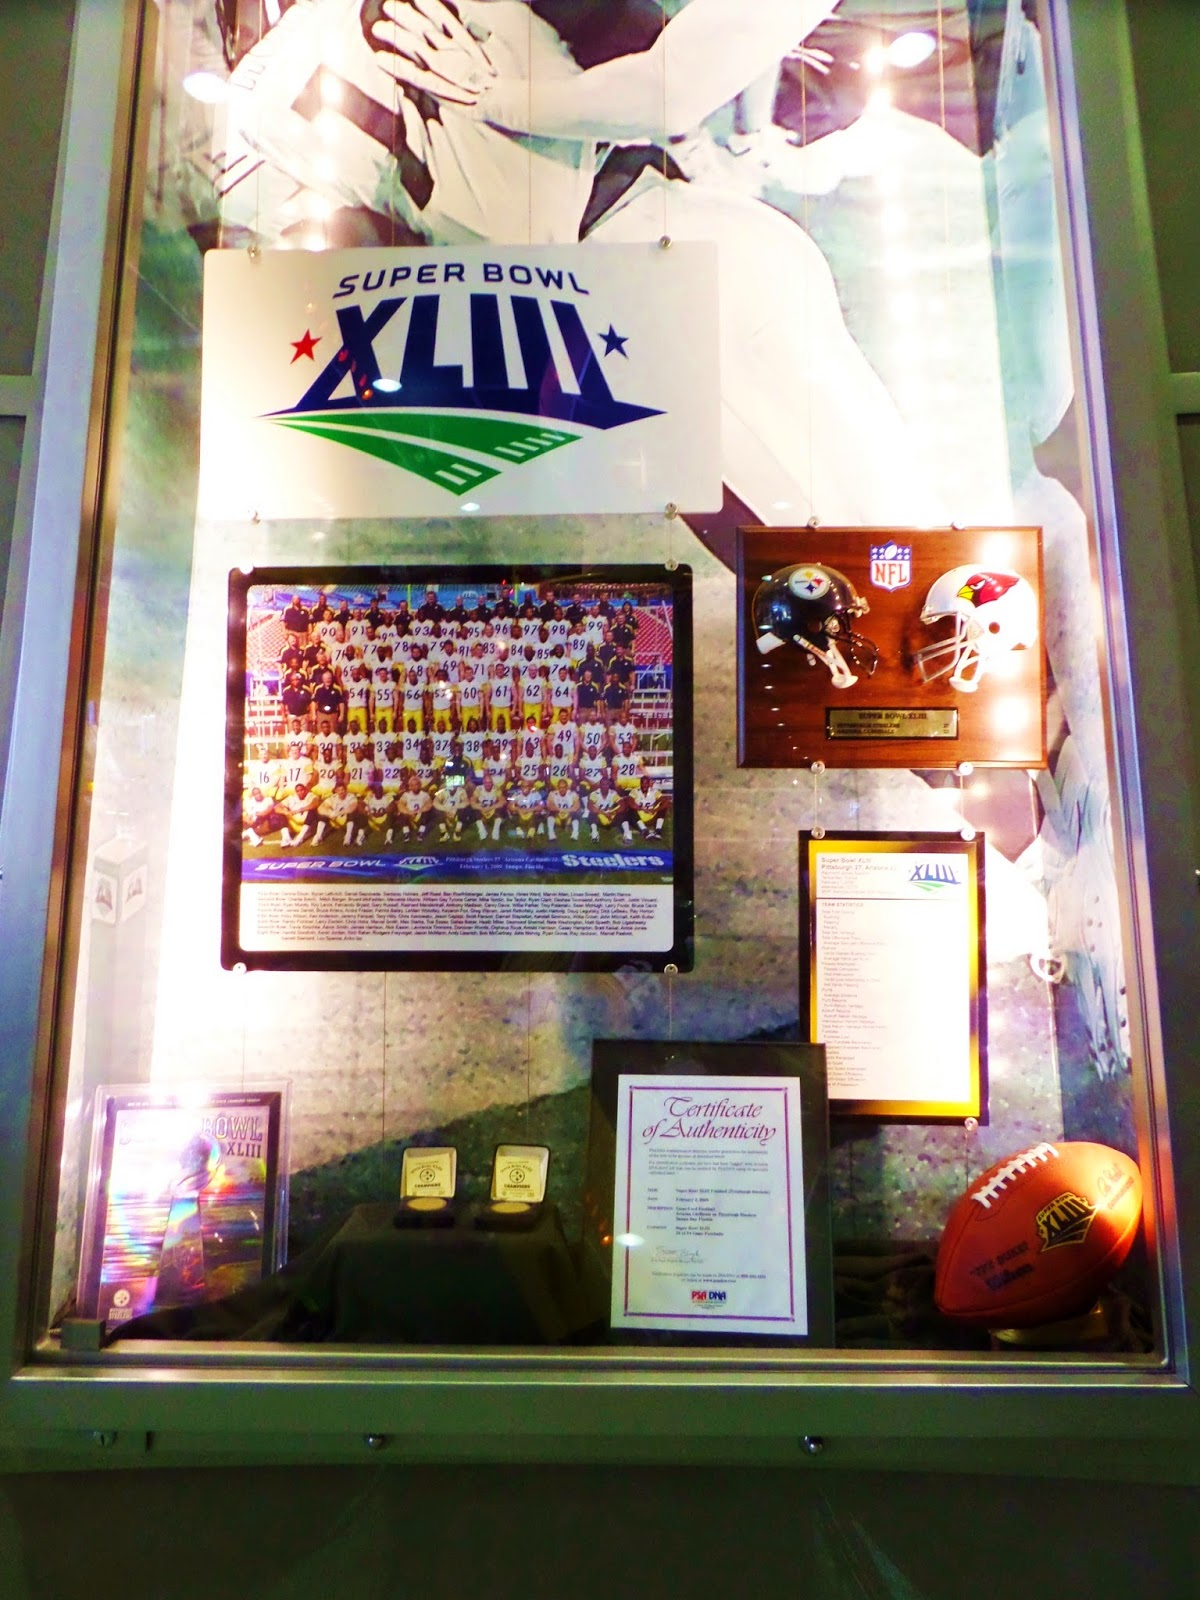 Super Bowl XLIII Lombardi Case